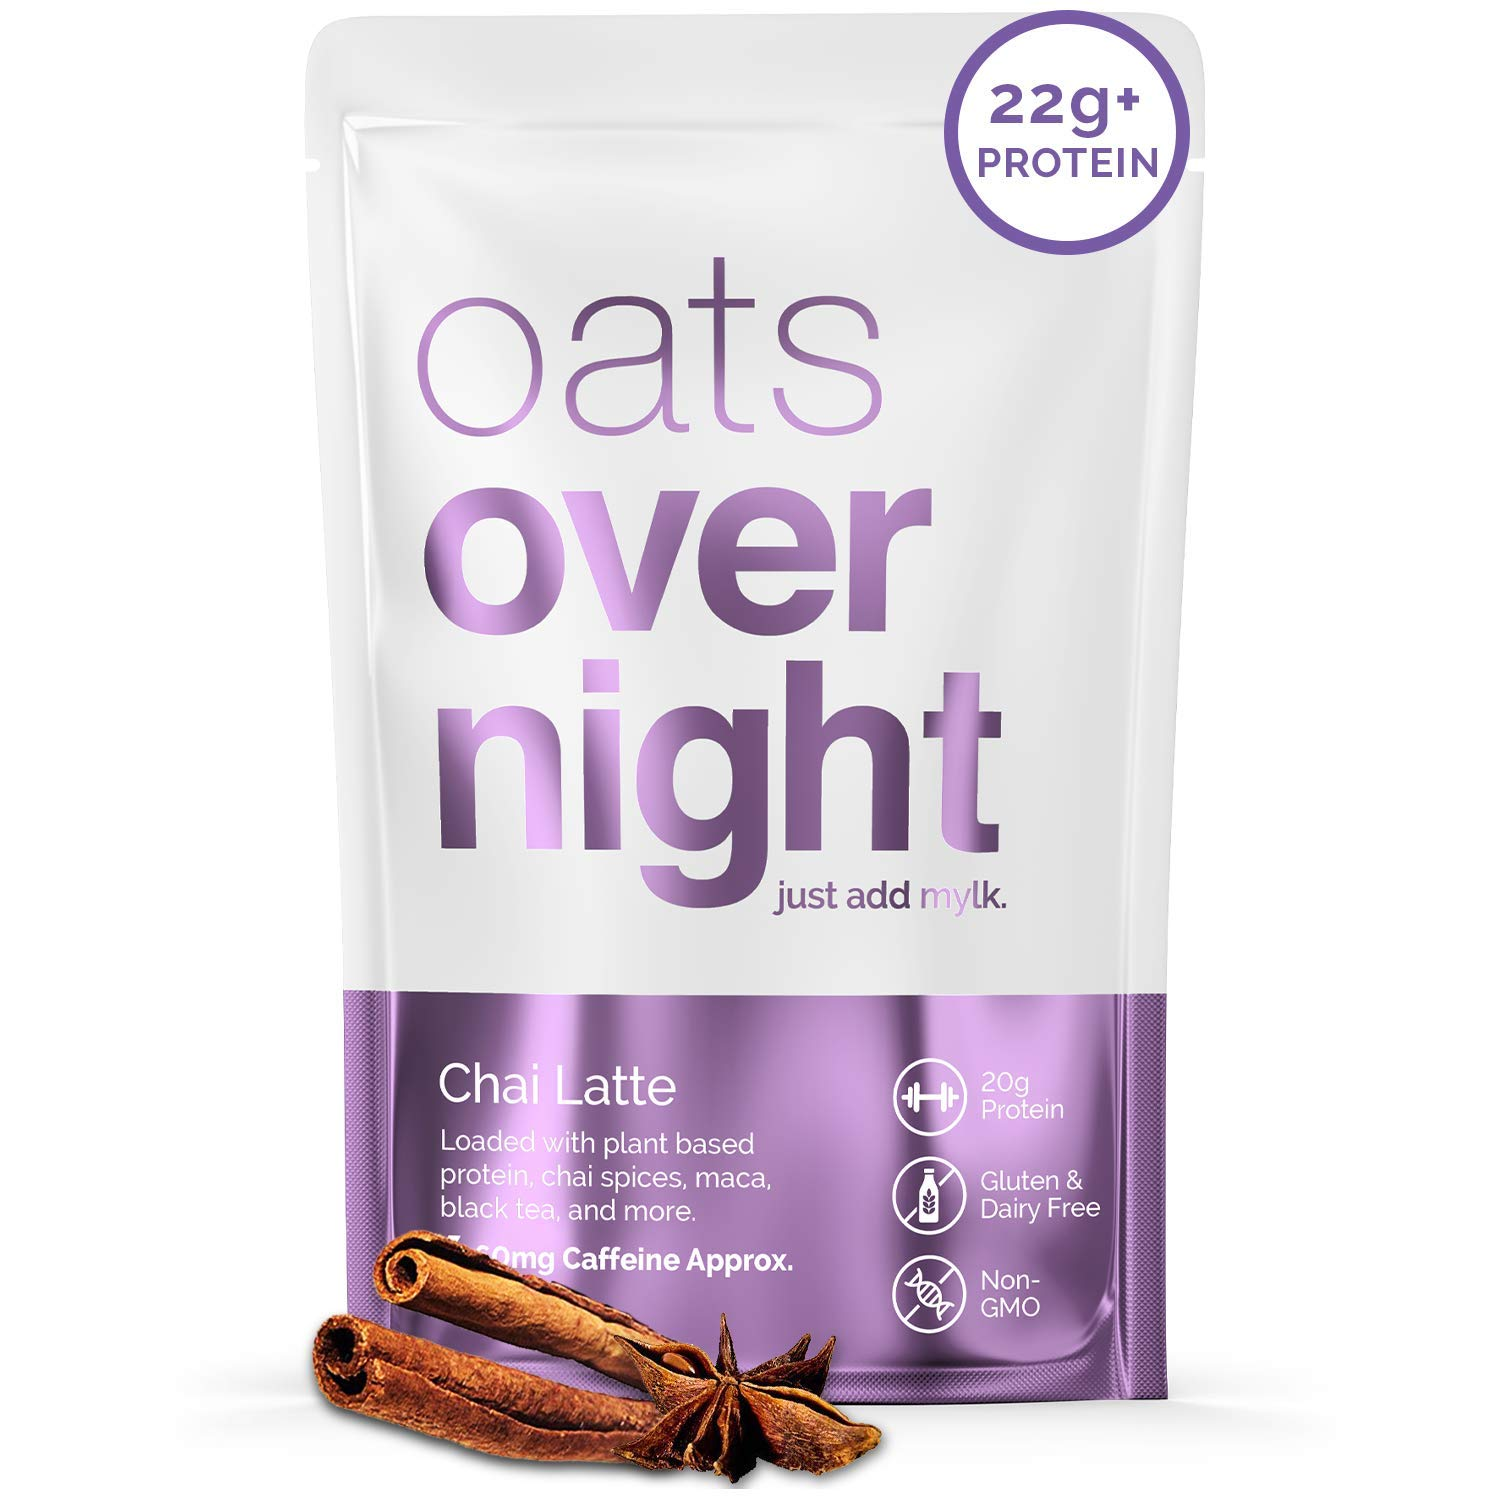 Oats Overnight - Chai Latte (8 Pack) Dairy Free, High Protein, Low Sugar Breakfast with Black Tea - Gluten Free, High Fiber, Non GMO Oatmeal (2.6oz per Pack)